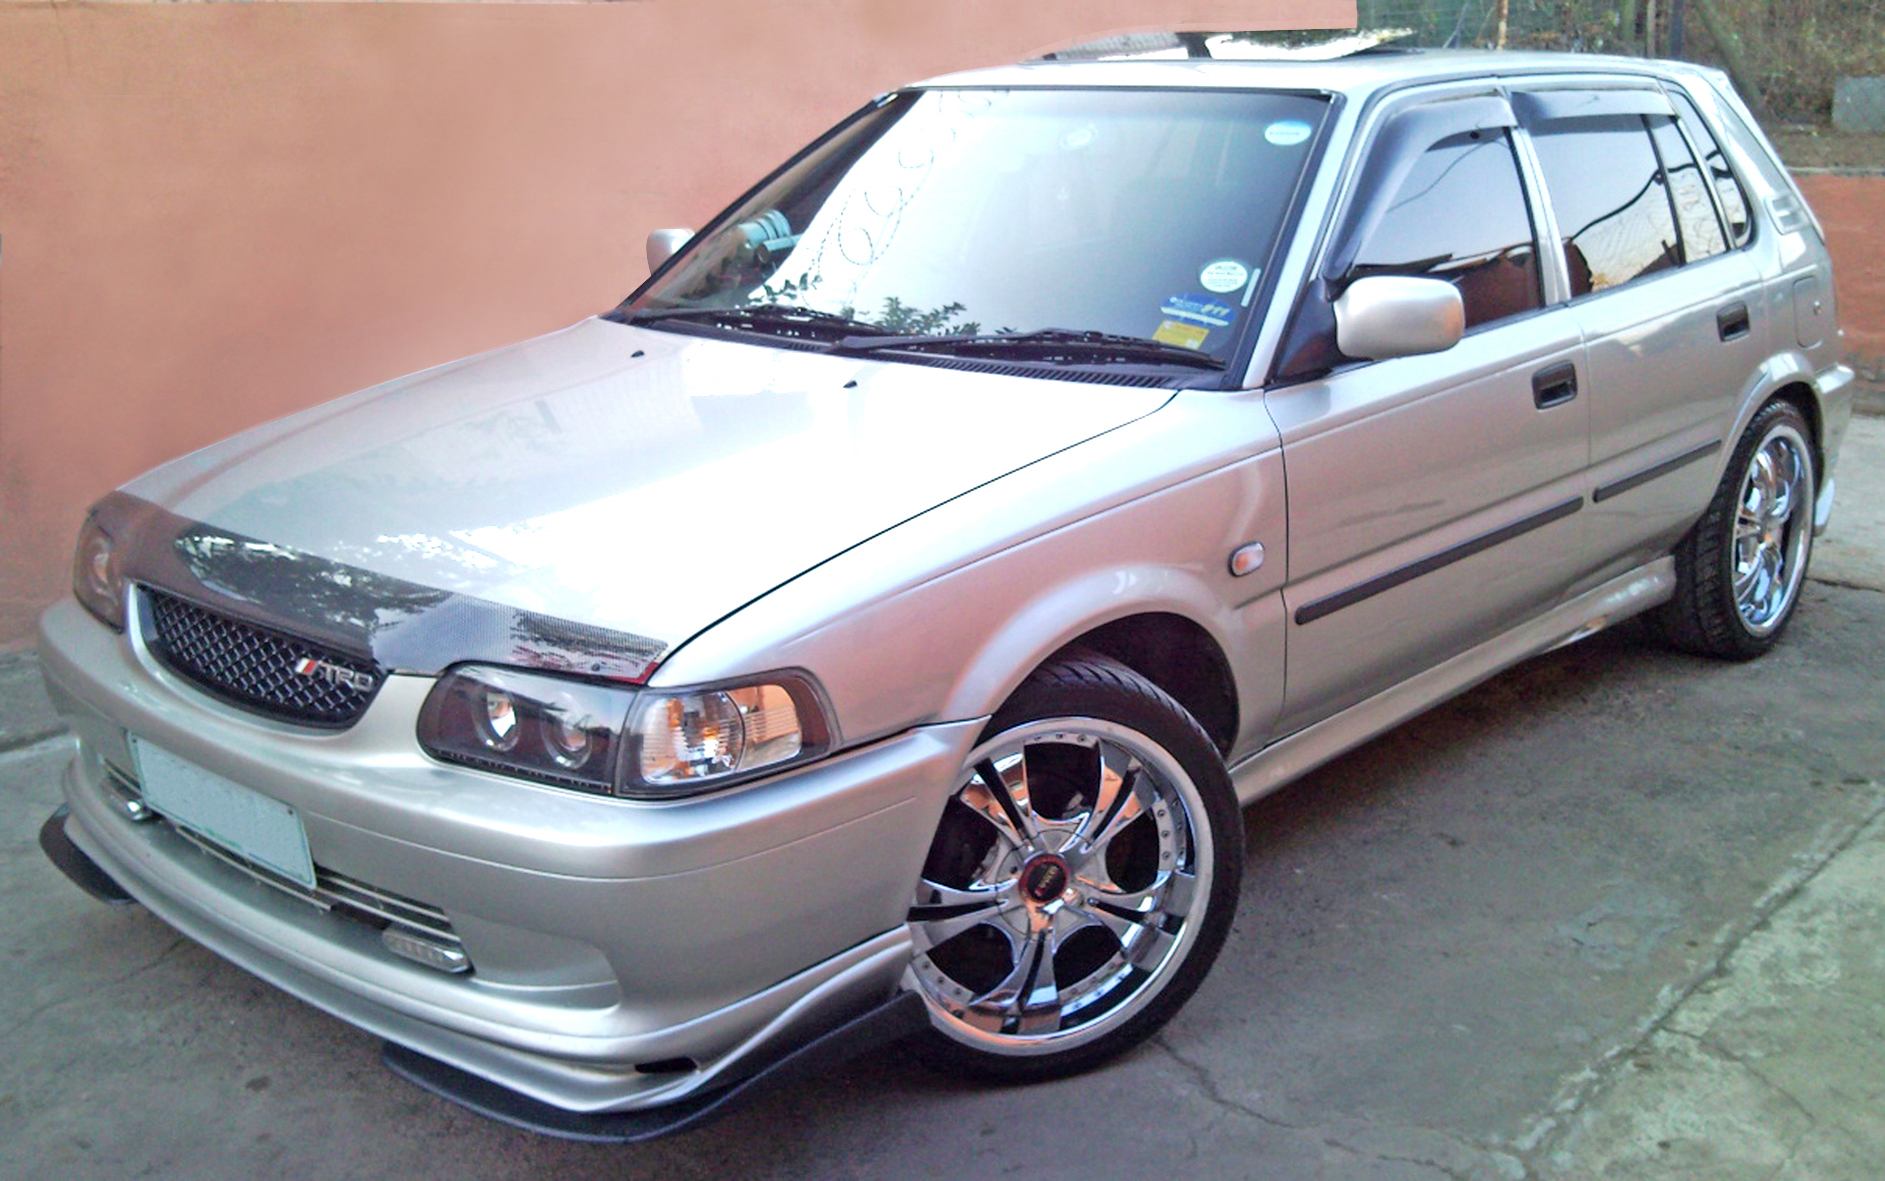 hight resolution of toyota tazz specs photos videos and more on topworldauto